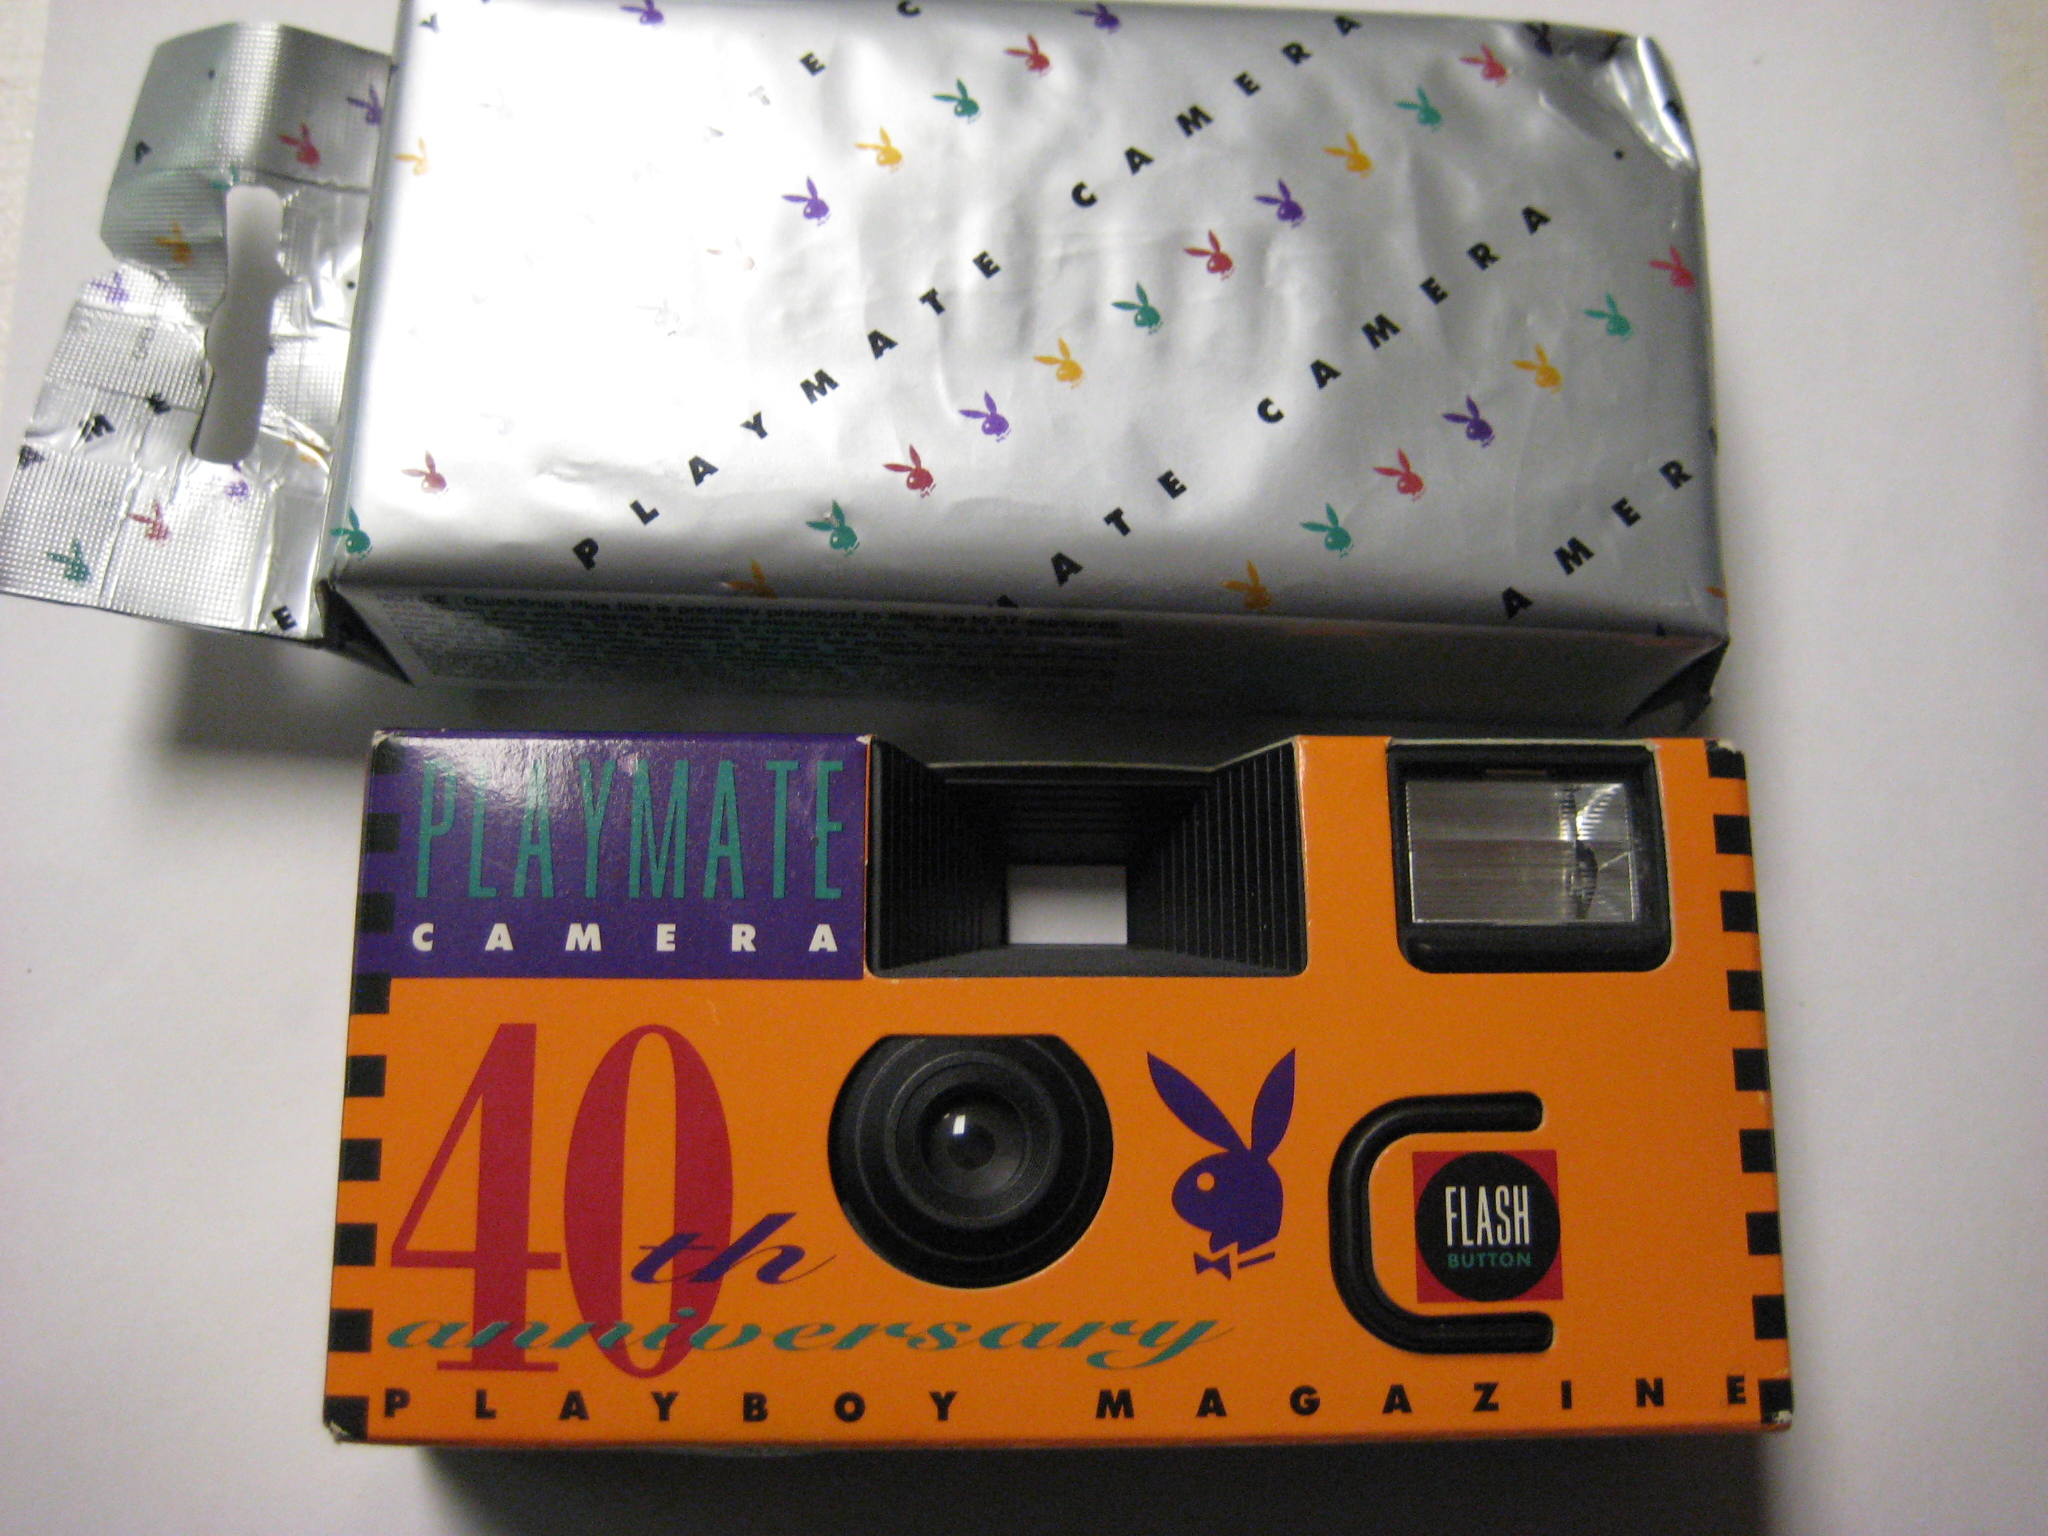 40th Anniversary Playmate Camera